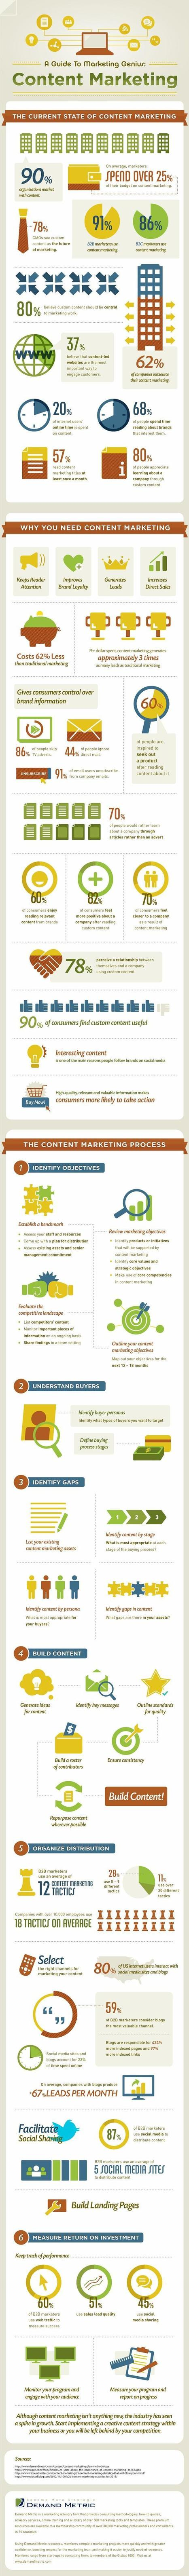 A Guide to Marketing Genius: Content Marketing [Infographic] | Internet Marketing & Social Media | Scoop.it